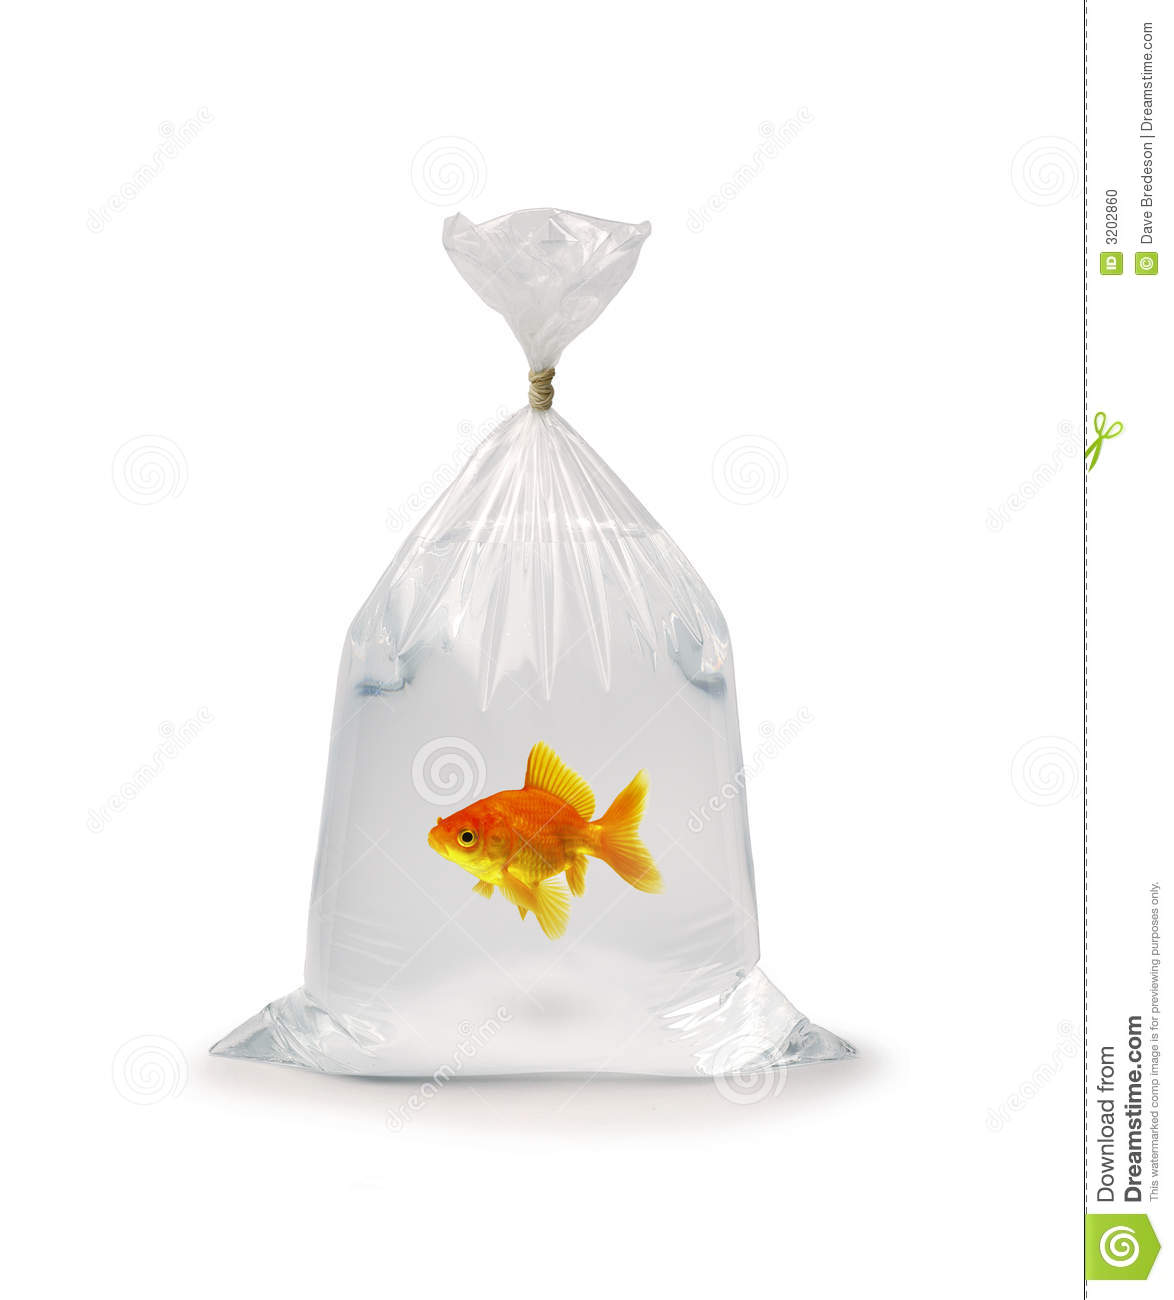 Ziploc Beutel Goldfish In Plastic Bag Stock Photo Image Of Home Take